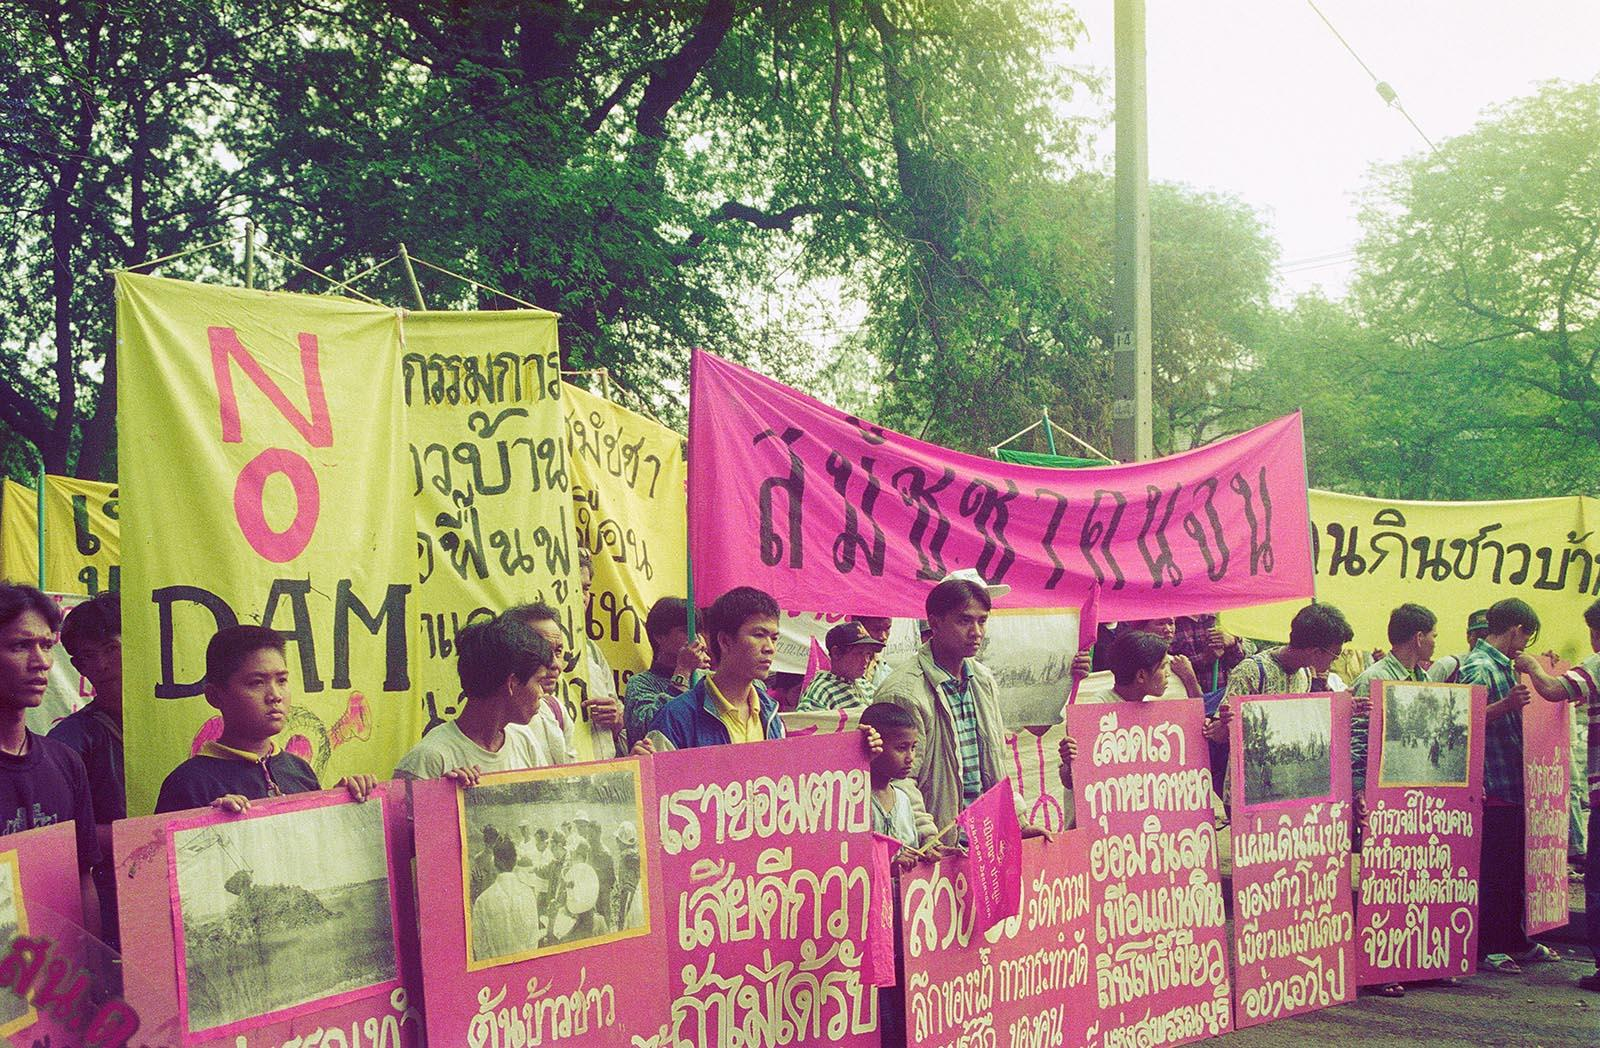 In 1997 members of the Rasi Salai anti-dam community joined hands with other anti-dam communities from across Thailand to protest during a infamous 99-day protest in Bangkok organised by the Assembly of the Poor. Photo courtesy of the Wetland People Association - Rasi Salai, Si Saket.